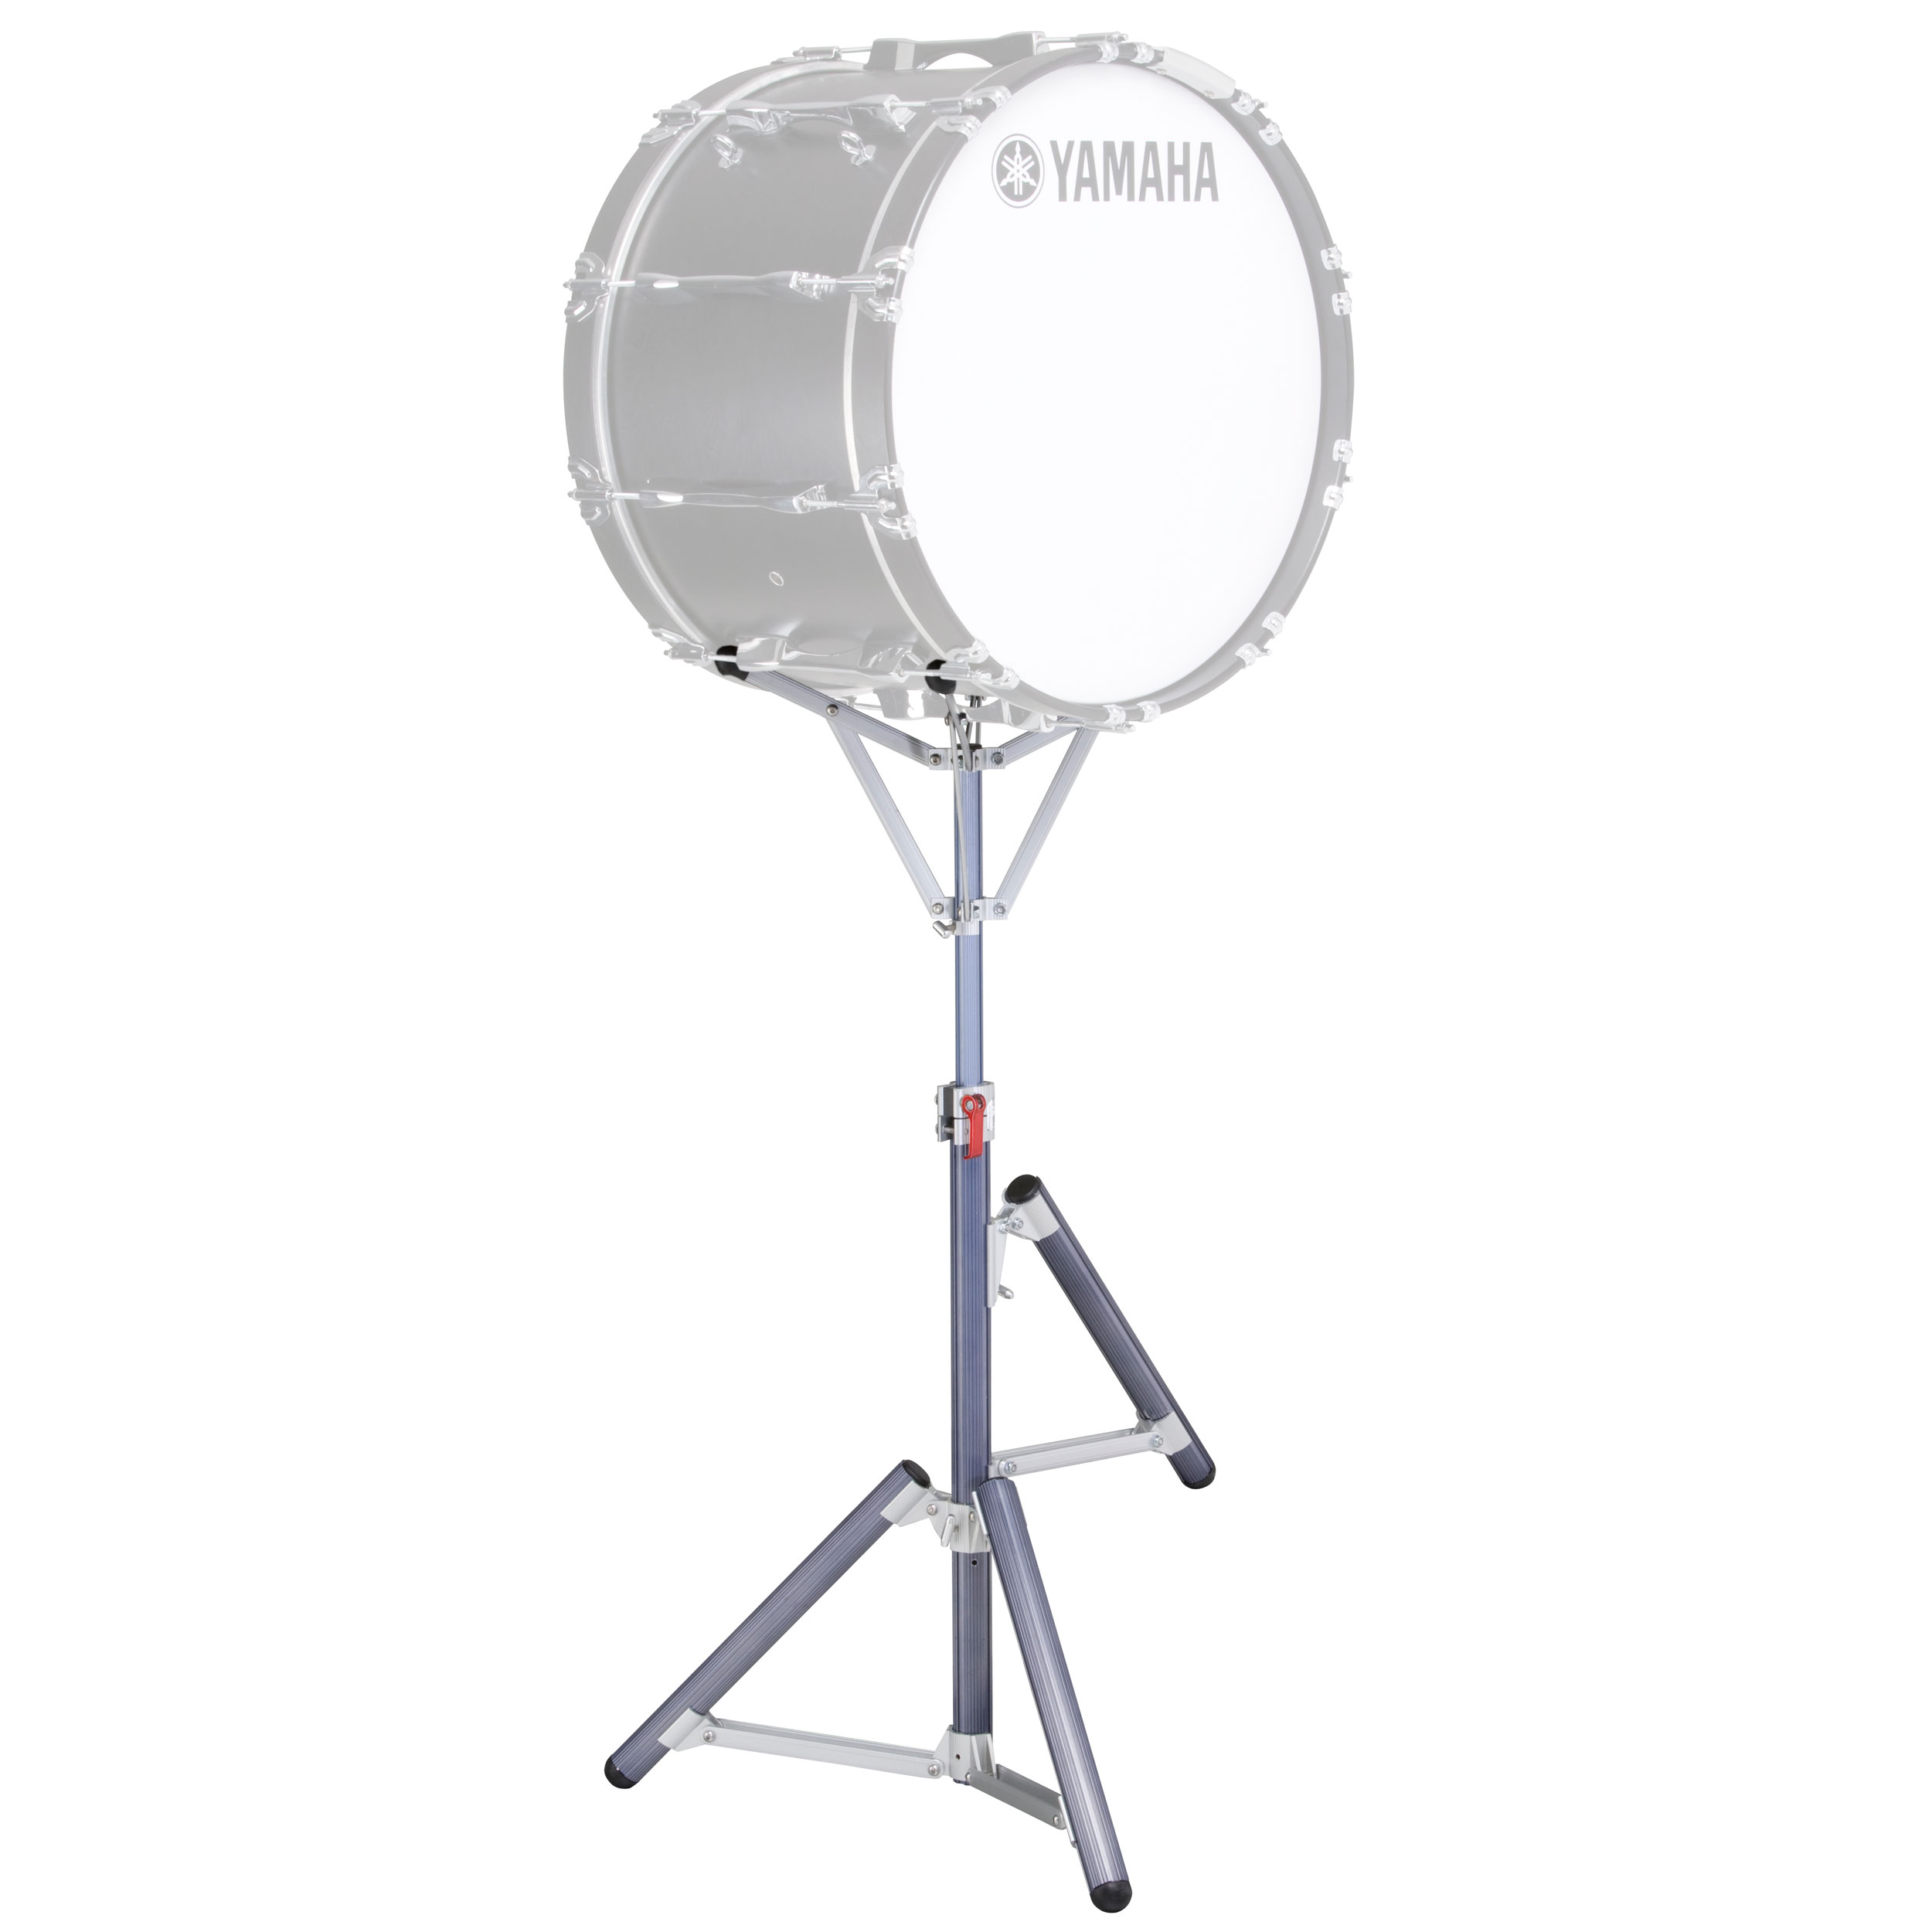 Yamaha AIRLift Stadium Marching Bass Drum Stand